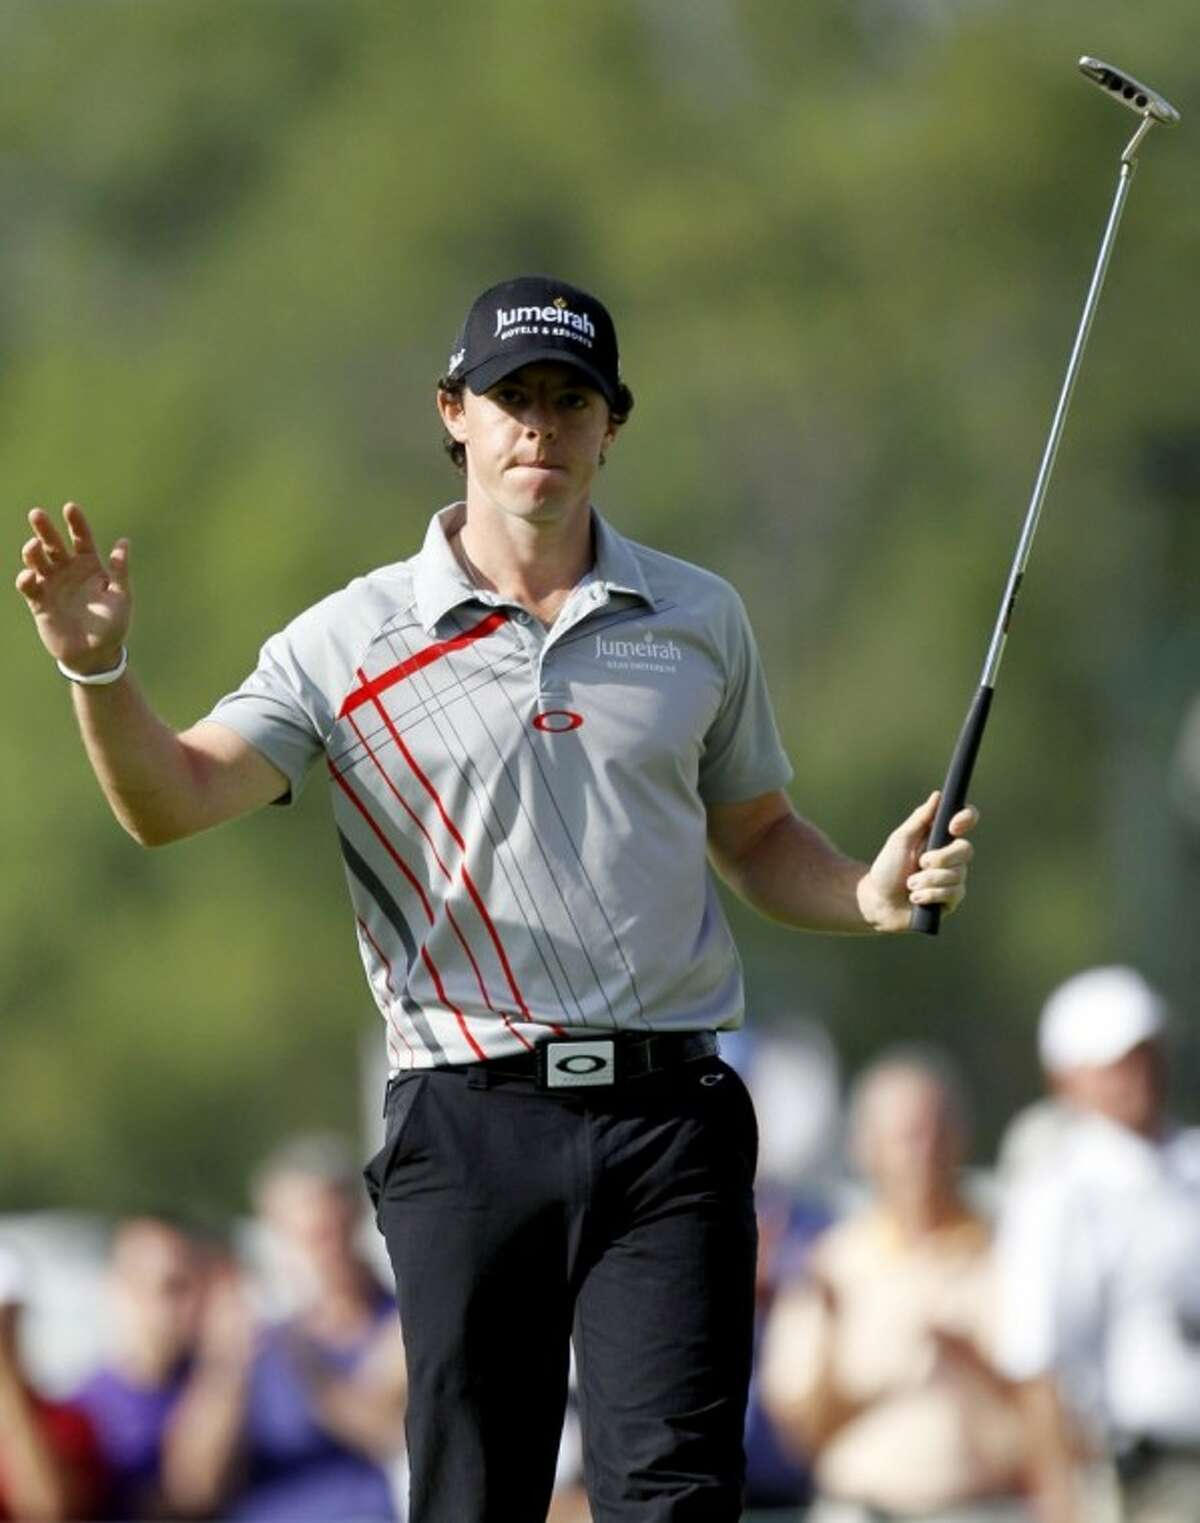 Rory McIlroy won the BMW Championship with a final round of 67.